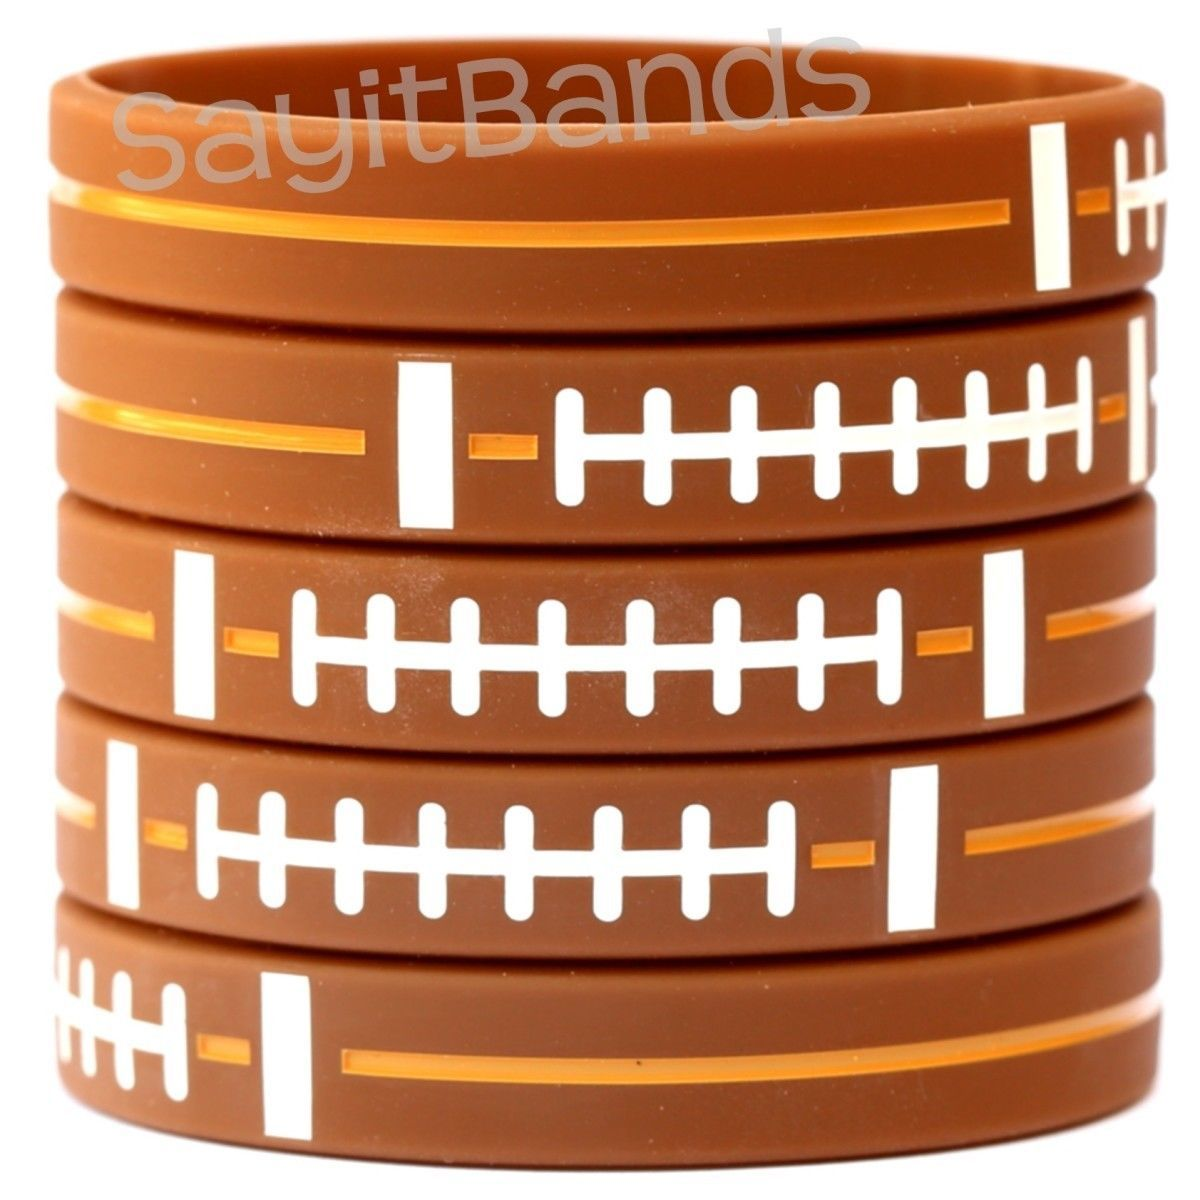 5 FOOTBALL Wristbands - Silicone Bracelets - Debossed Quality Wrist Bands - $5.82